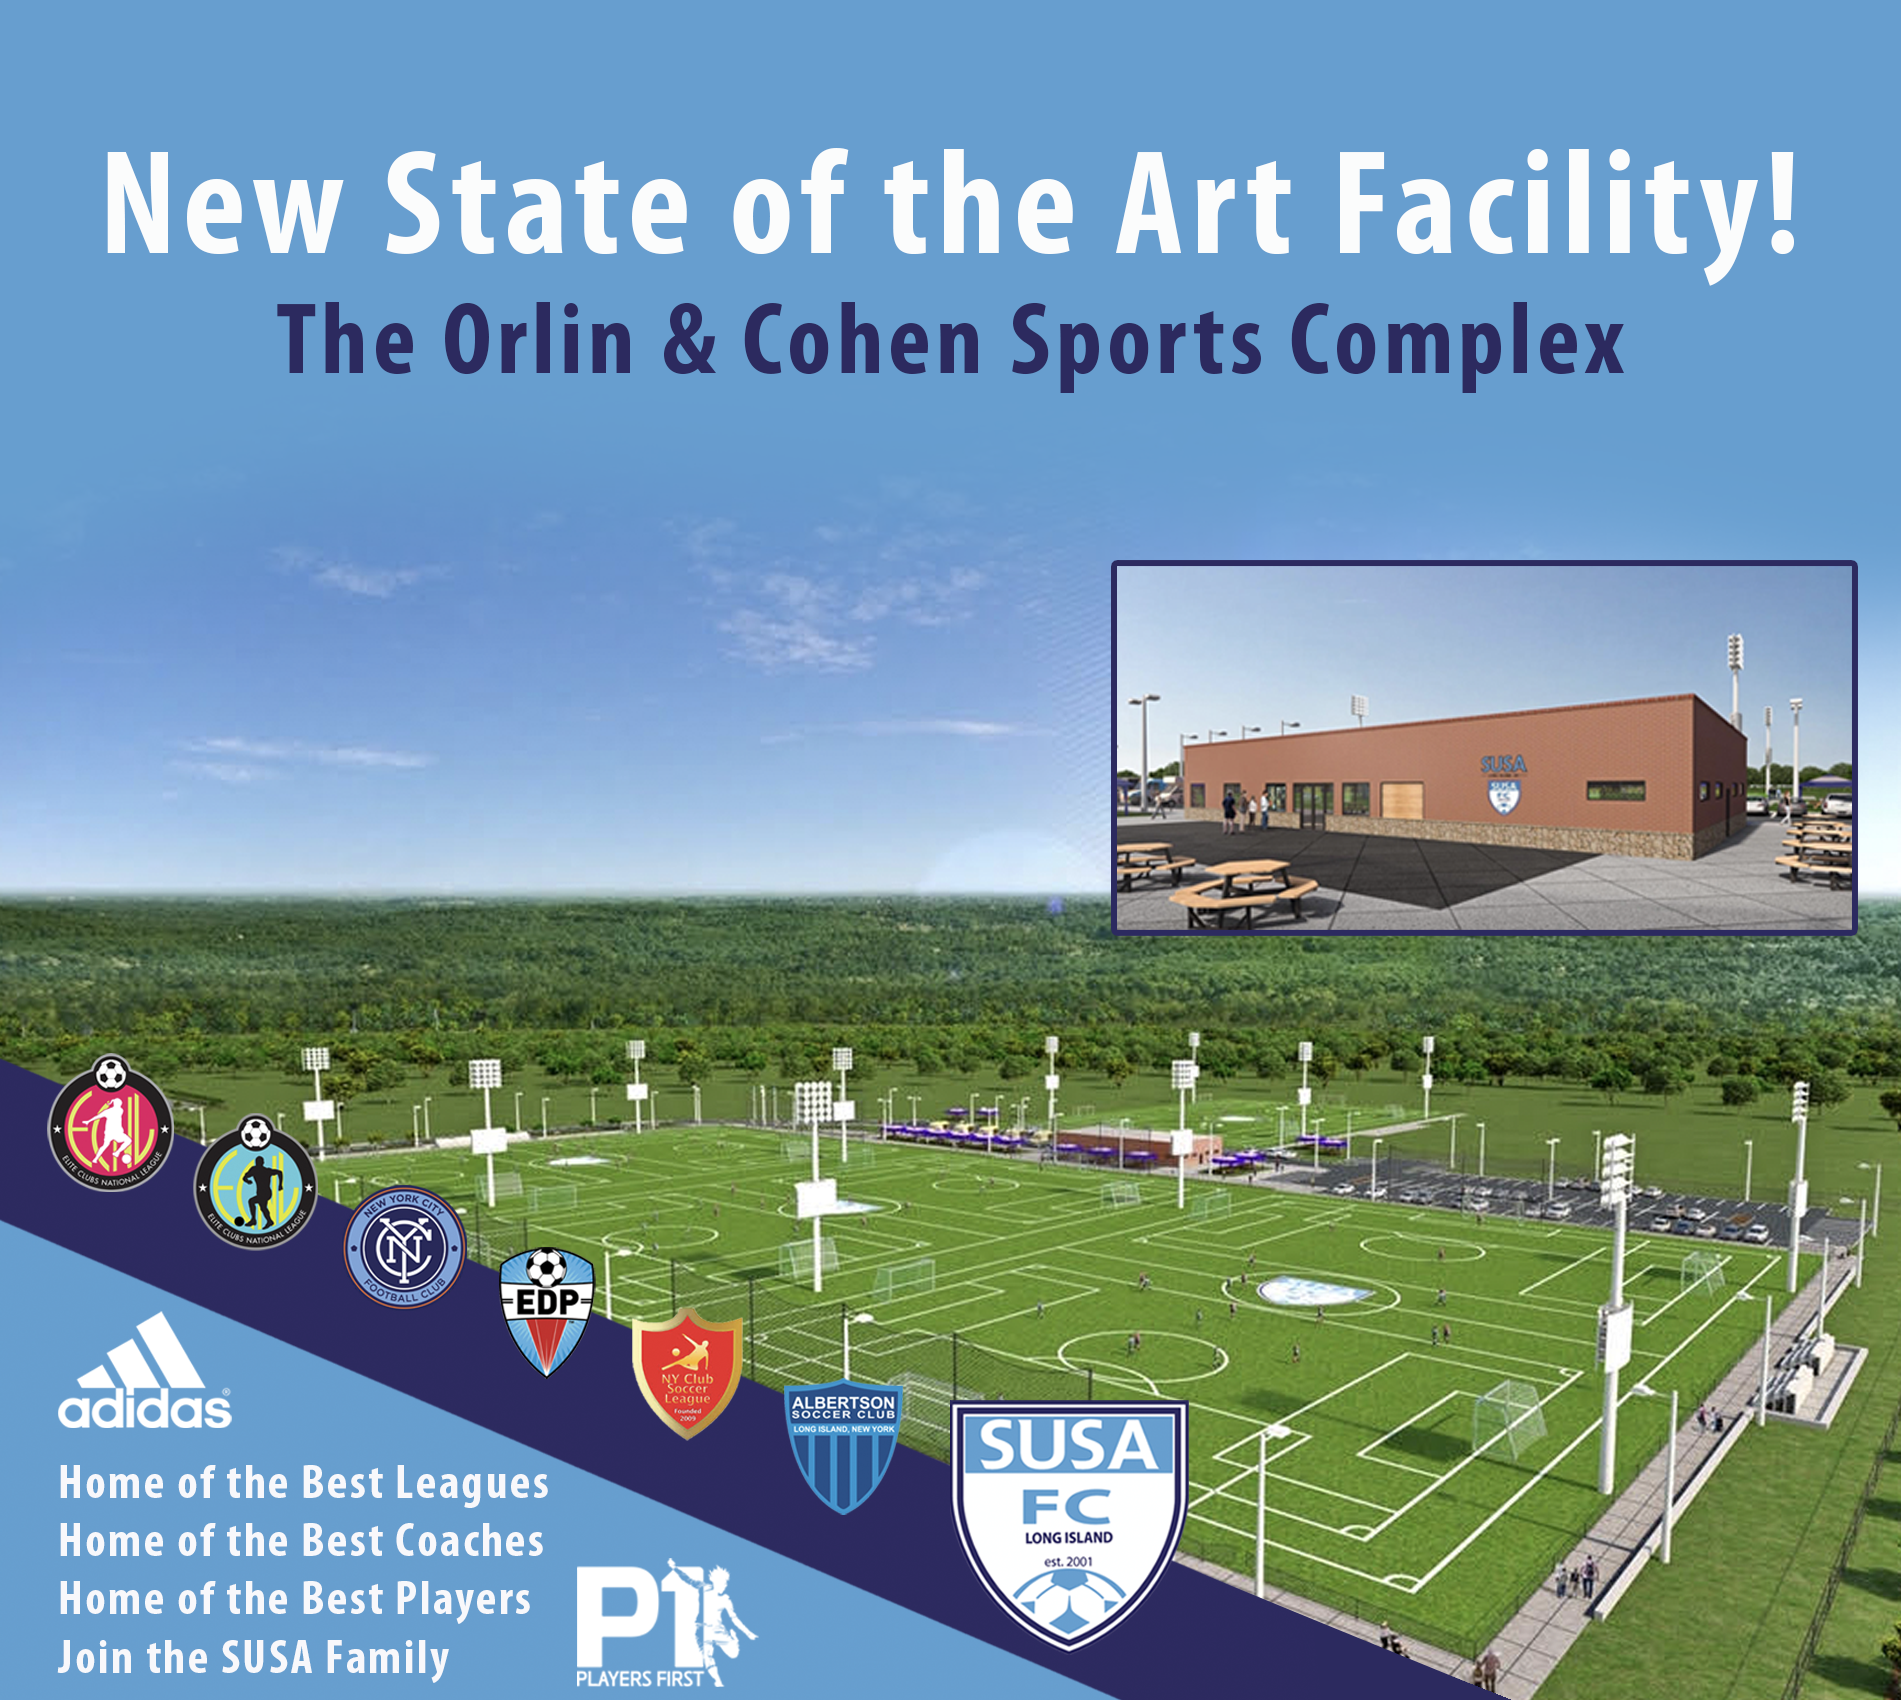 State of the art facility!